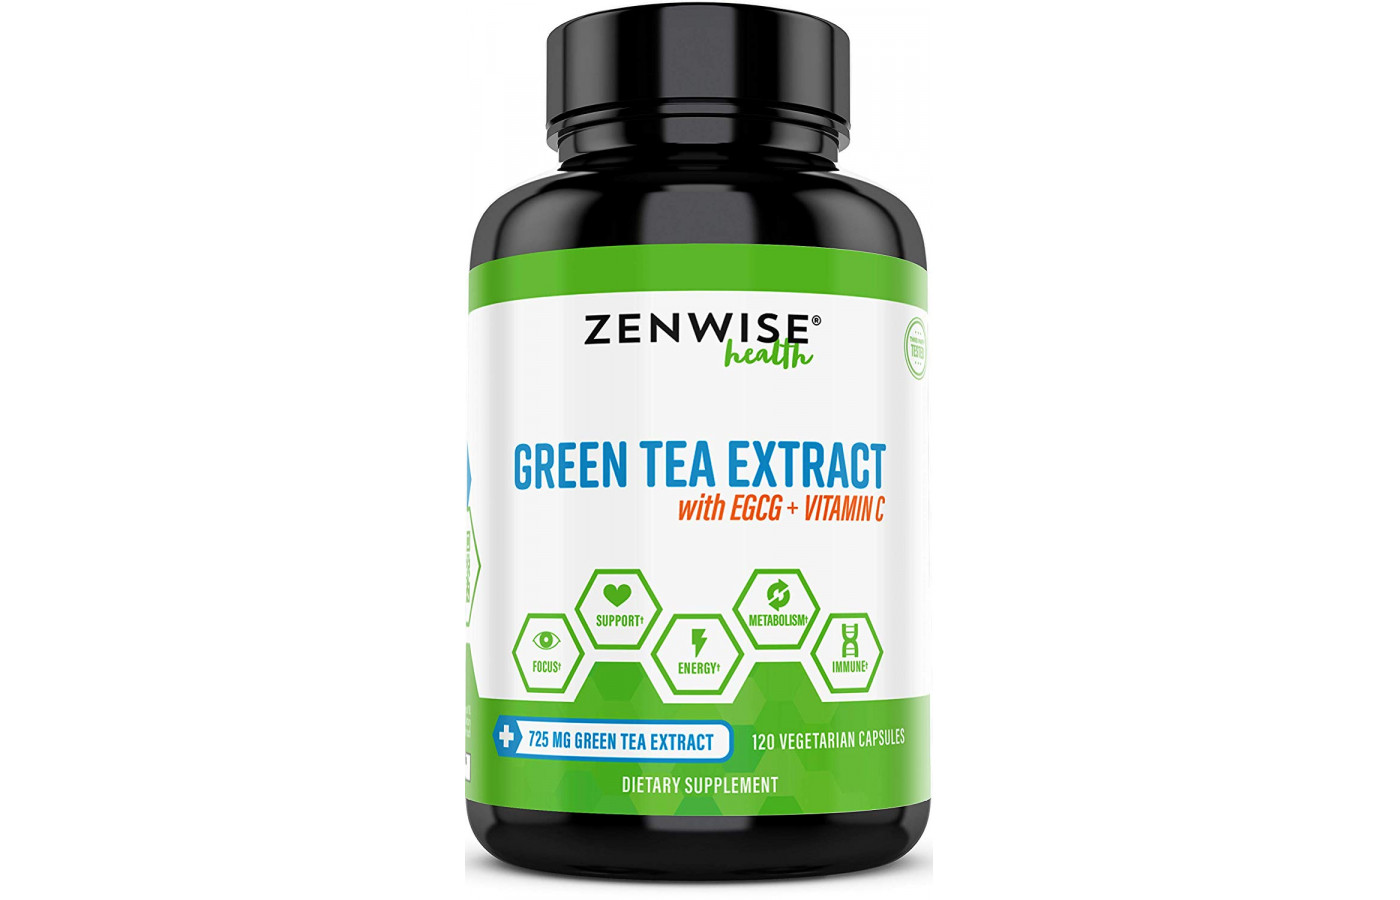 zenwise green tea extract front